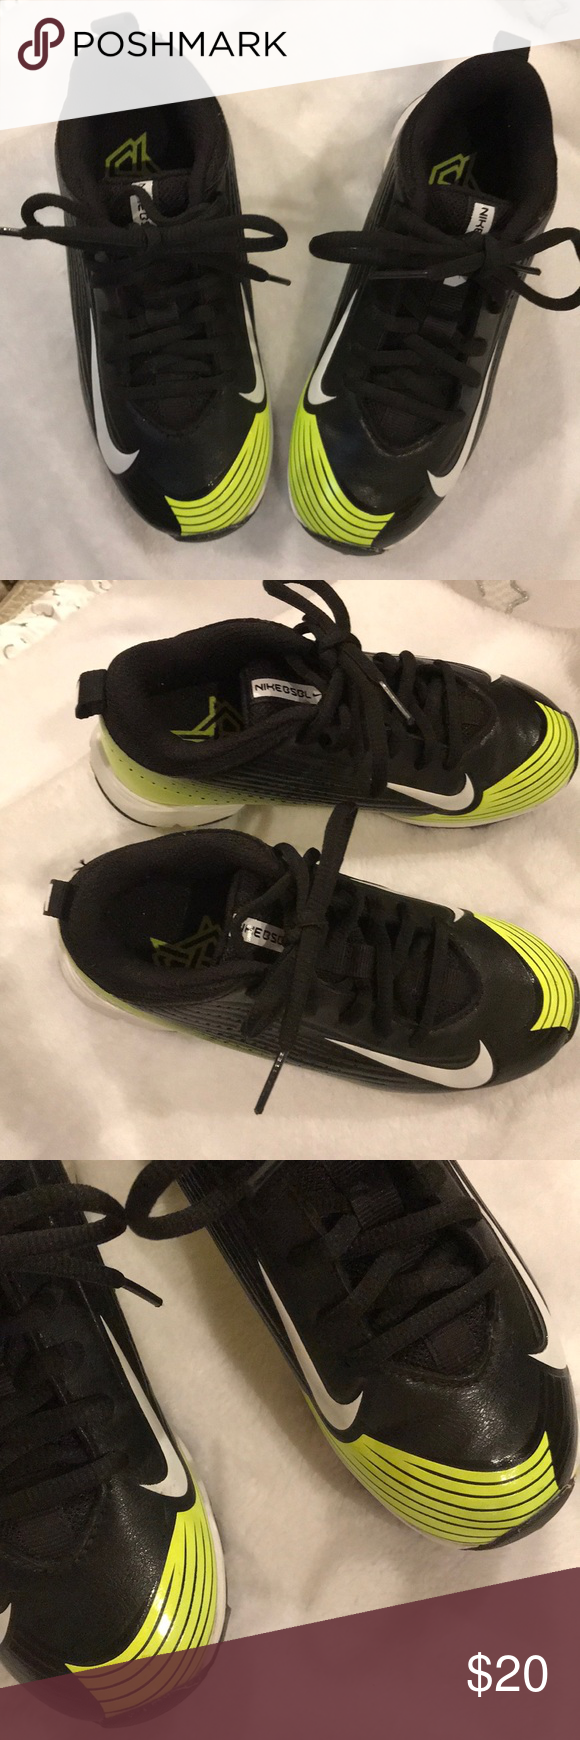 NIKE BOYS TENNIS SHOES with CLEATS They are absolutely adorable tennis shoe CLEATS for a boy to wear They are very stylish with the Nike emblem on the sides of them They...